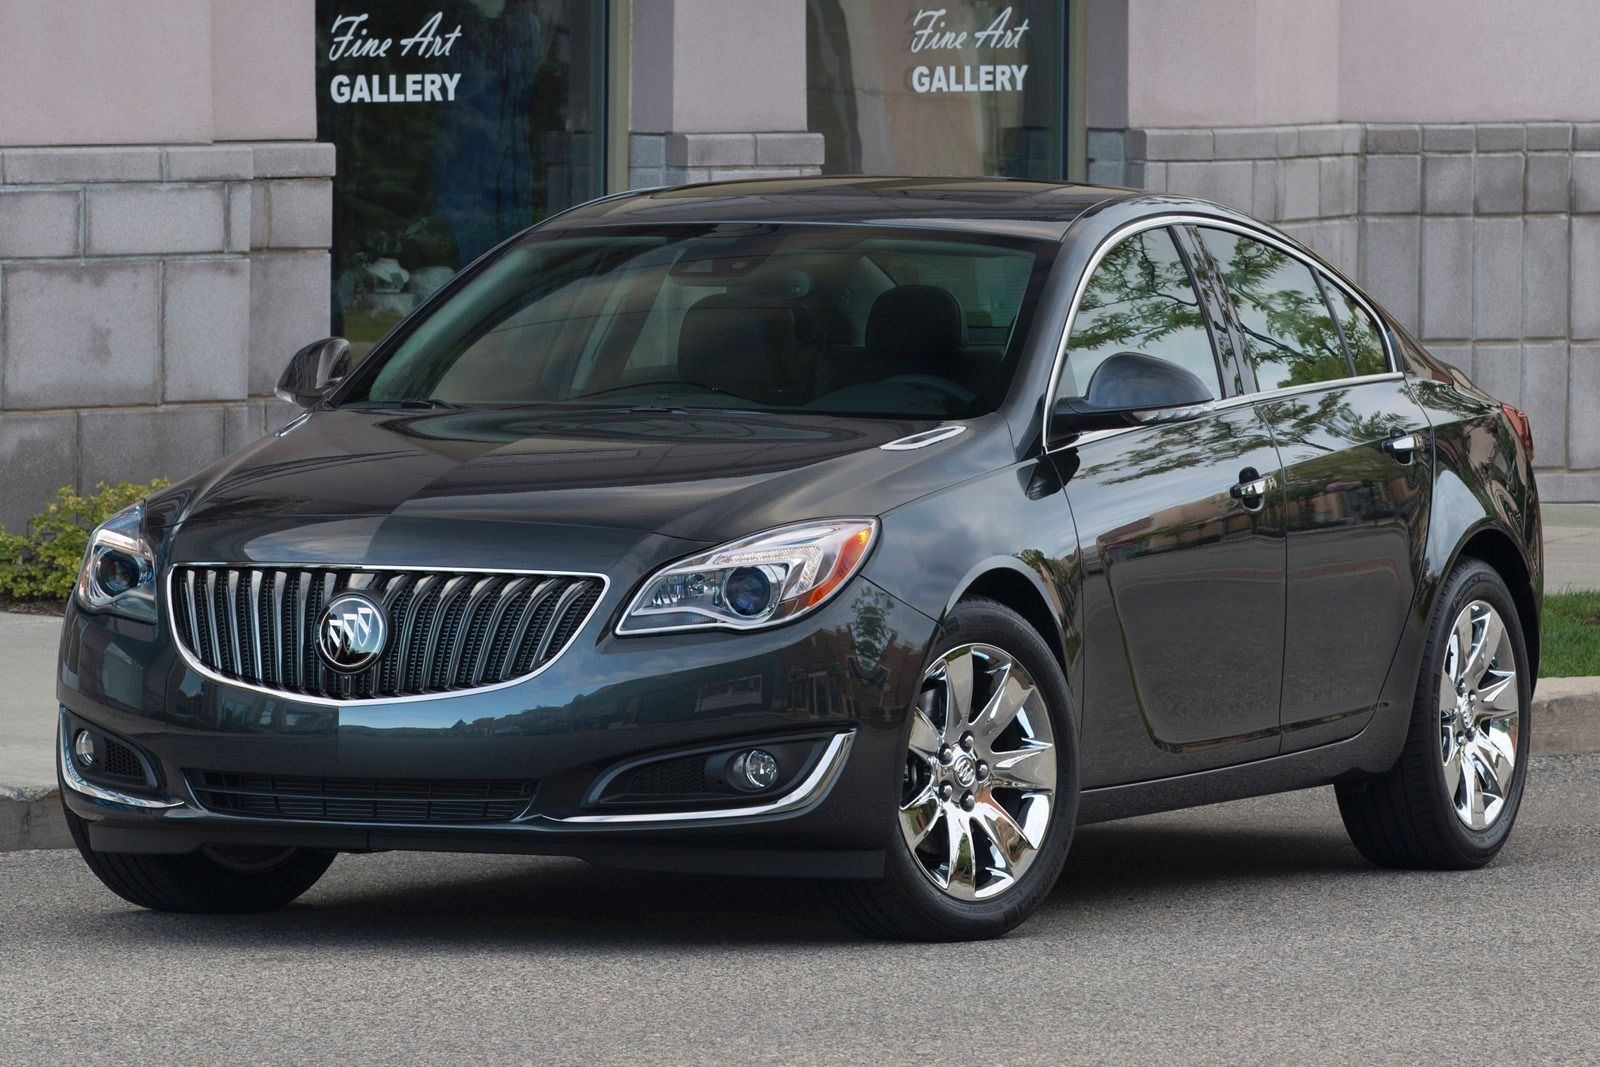 Whether Elr Stands For Electric Roadster Or Is A Nod To Eldorado 2015 Buick Verano Wiring Diagram Remains Irrelevant The 2014 Cadillac Beautiful Fun On Wheels Pinterest